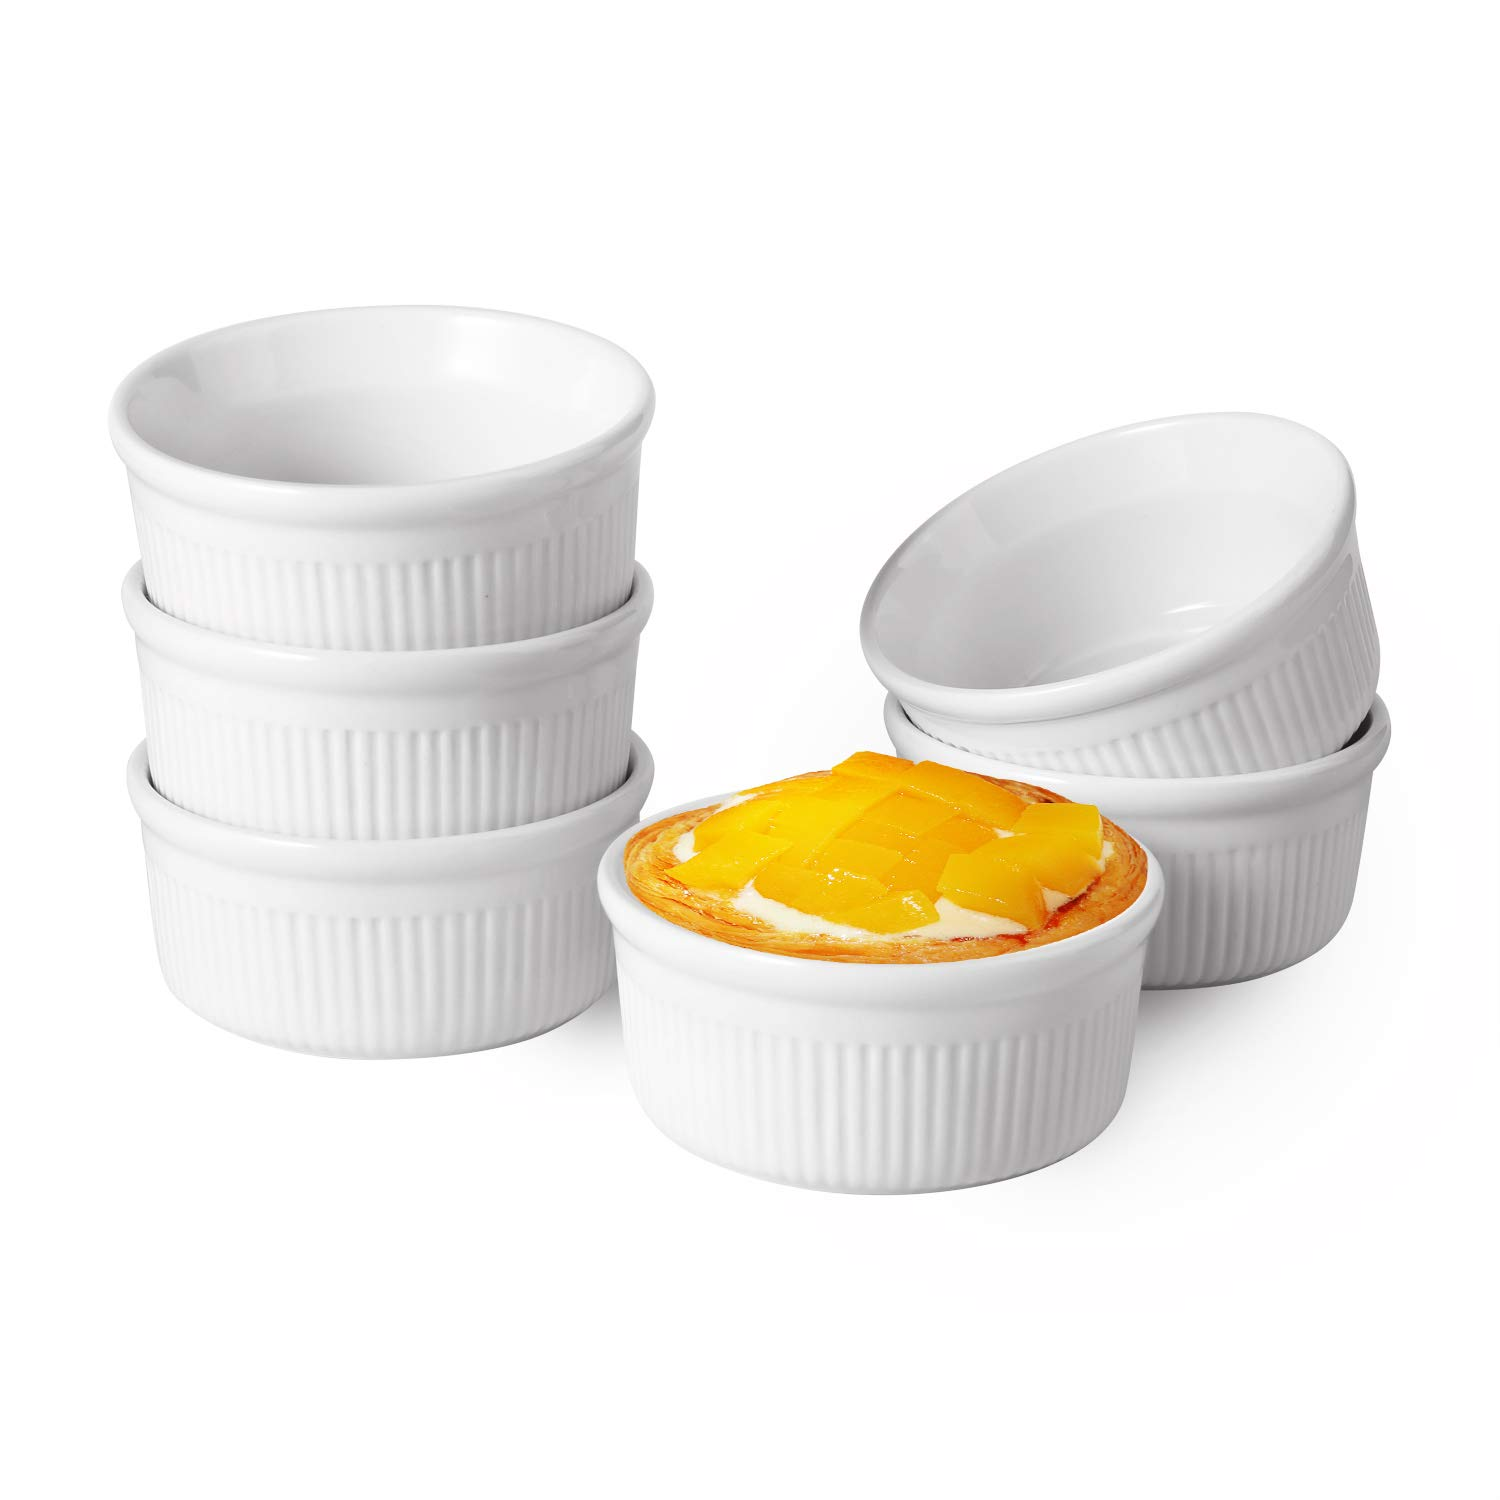 Custards Durable Set of 6 6oz Baking Cups for Souffle ComSaf White Porcelain Ramekins Creme Brulee Pudding and Ice Cream